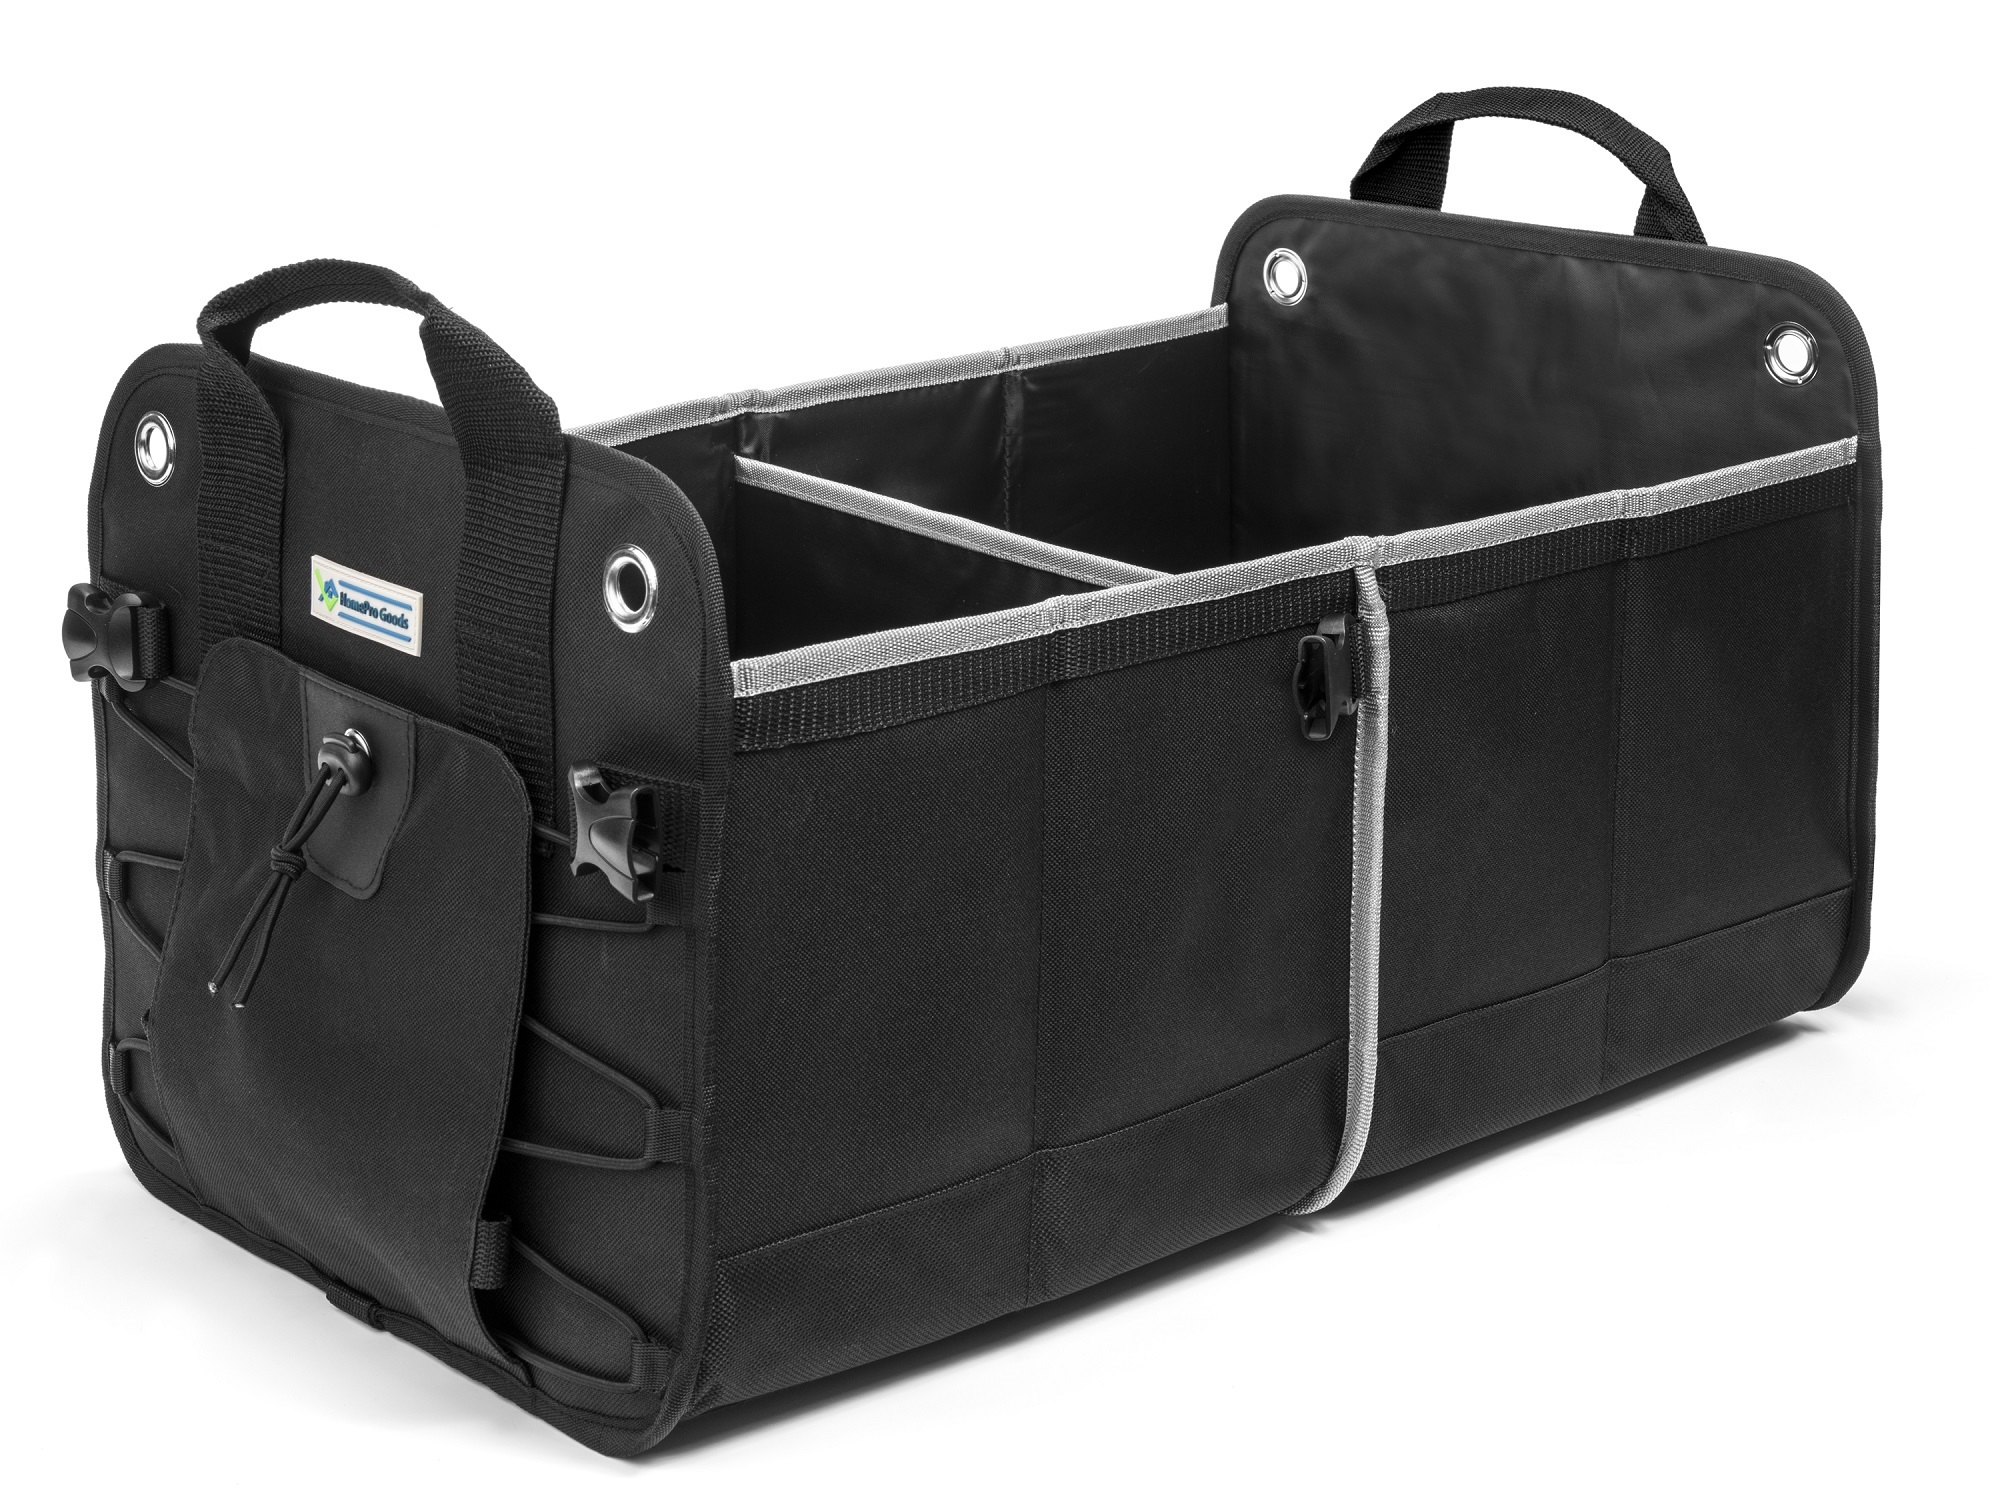 HomePro Goods Car Trunk Organizer shown on white background